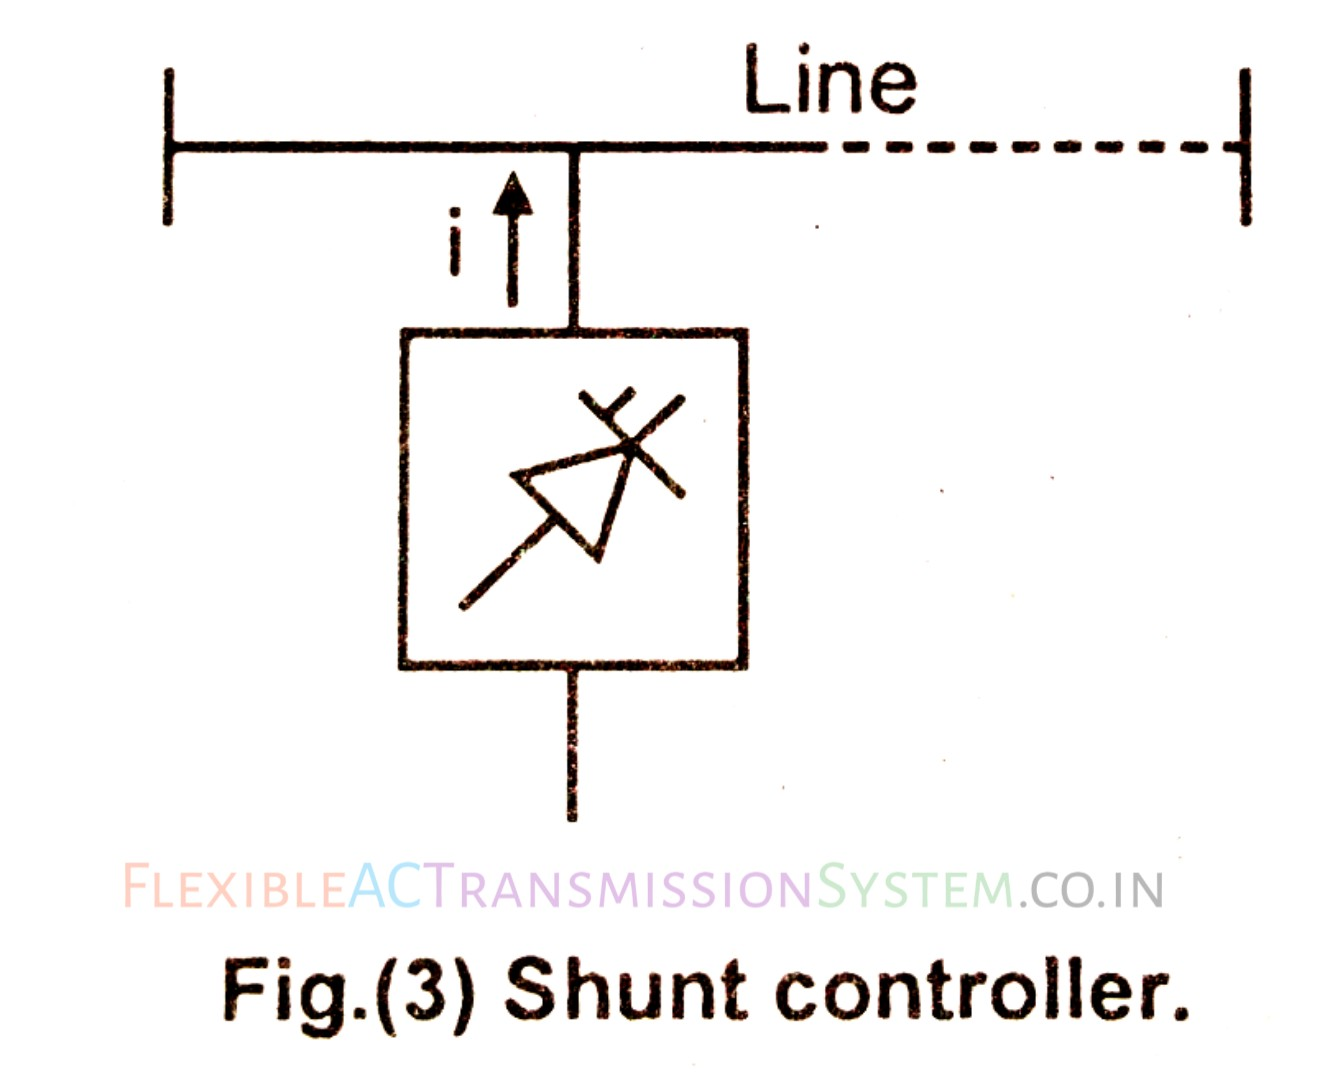 small resolution of a controller which is connected in parallel with the transmission line called a shunt controller is as shown in fig 3